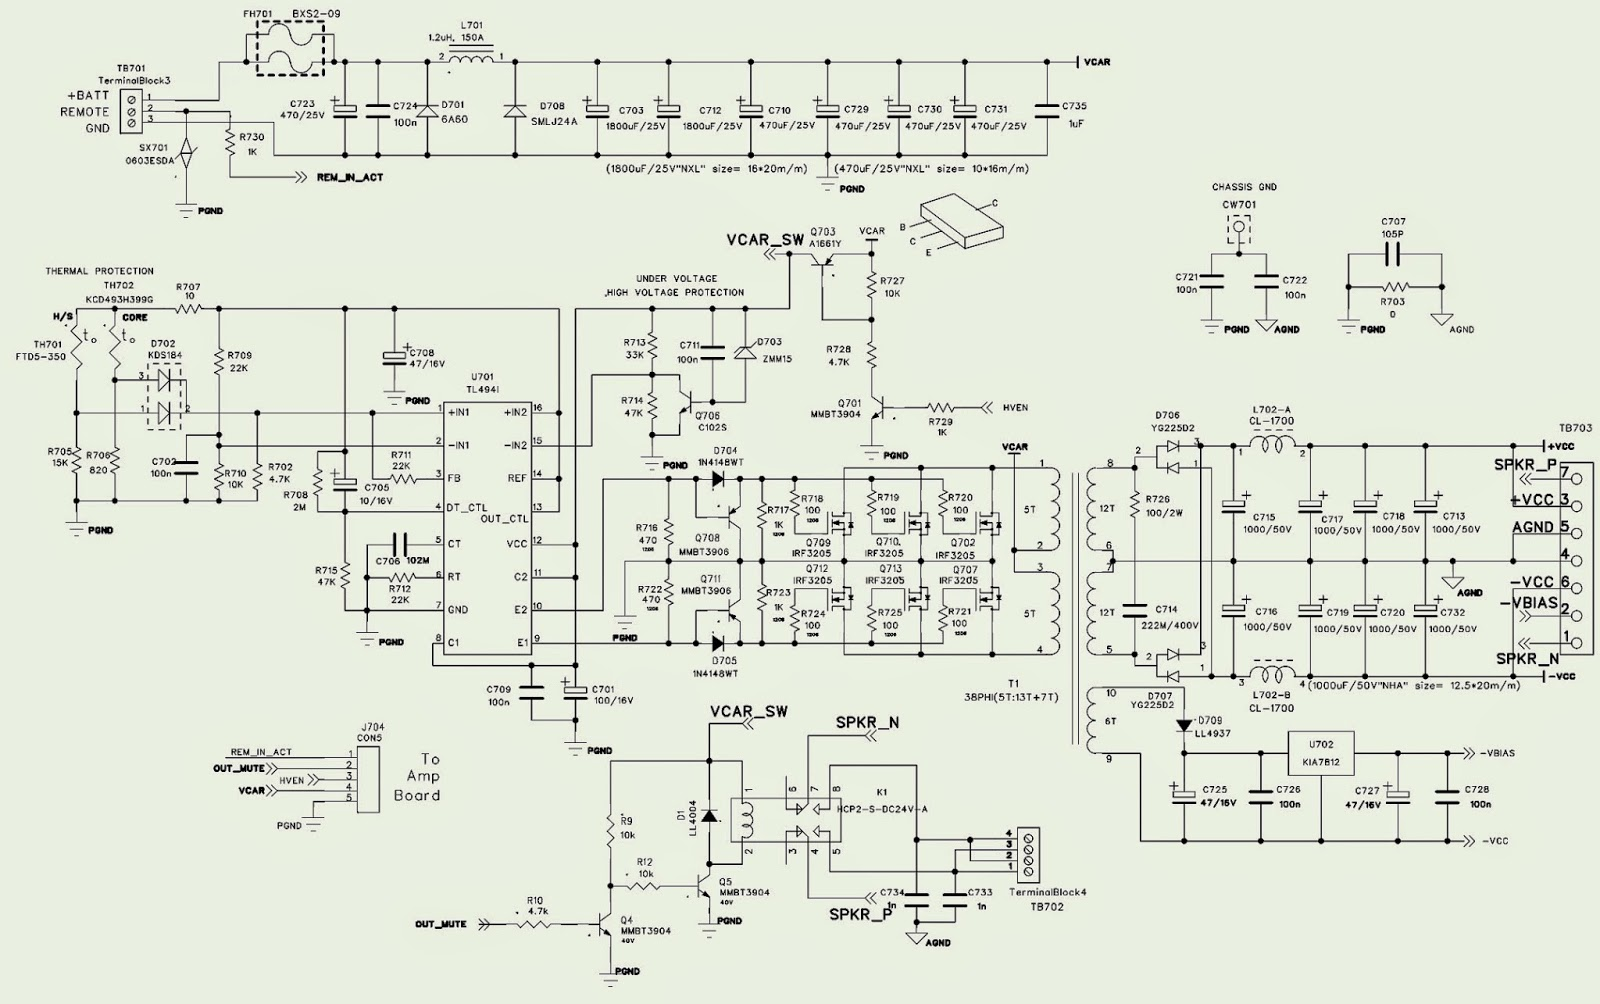 Irf3205 Wiring Diagram 22 Images Diagrams Inverter On For Using Sg3524 Circuit Image Various Jbl Ms A5001 Schematic Power Amplifier And Smps